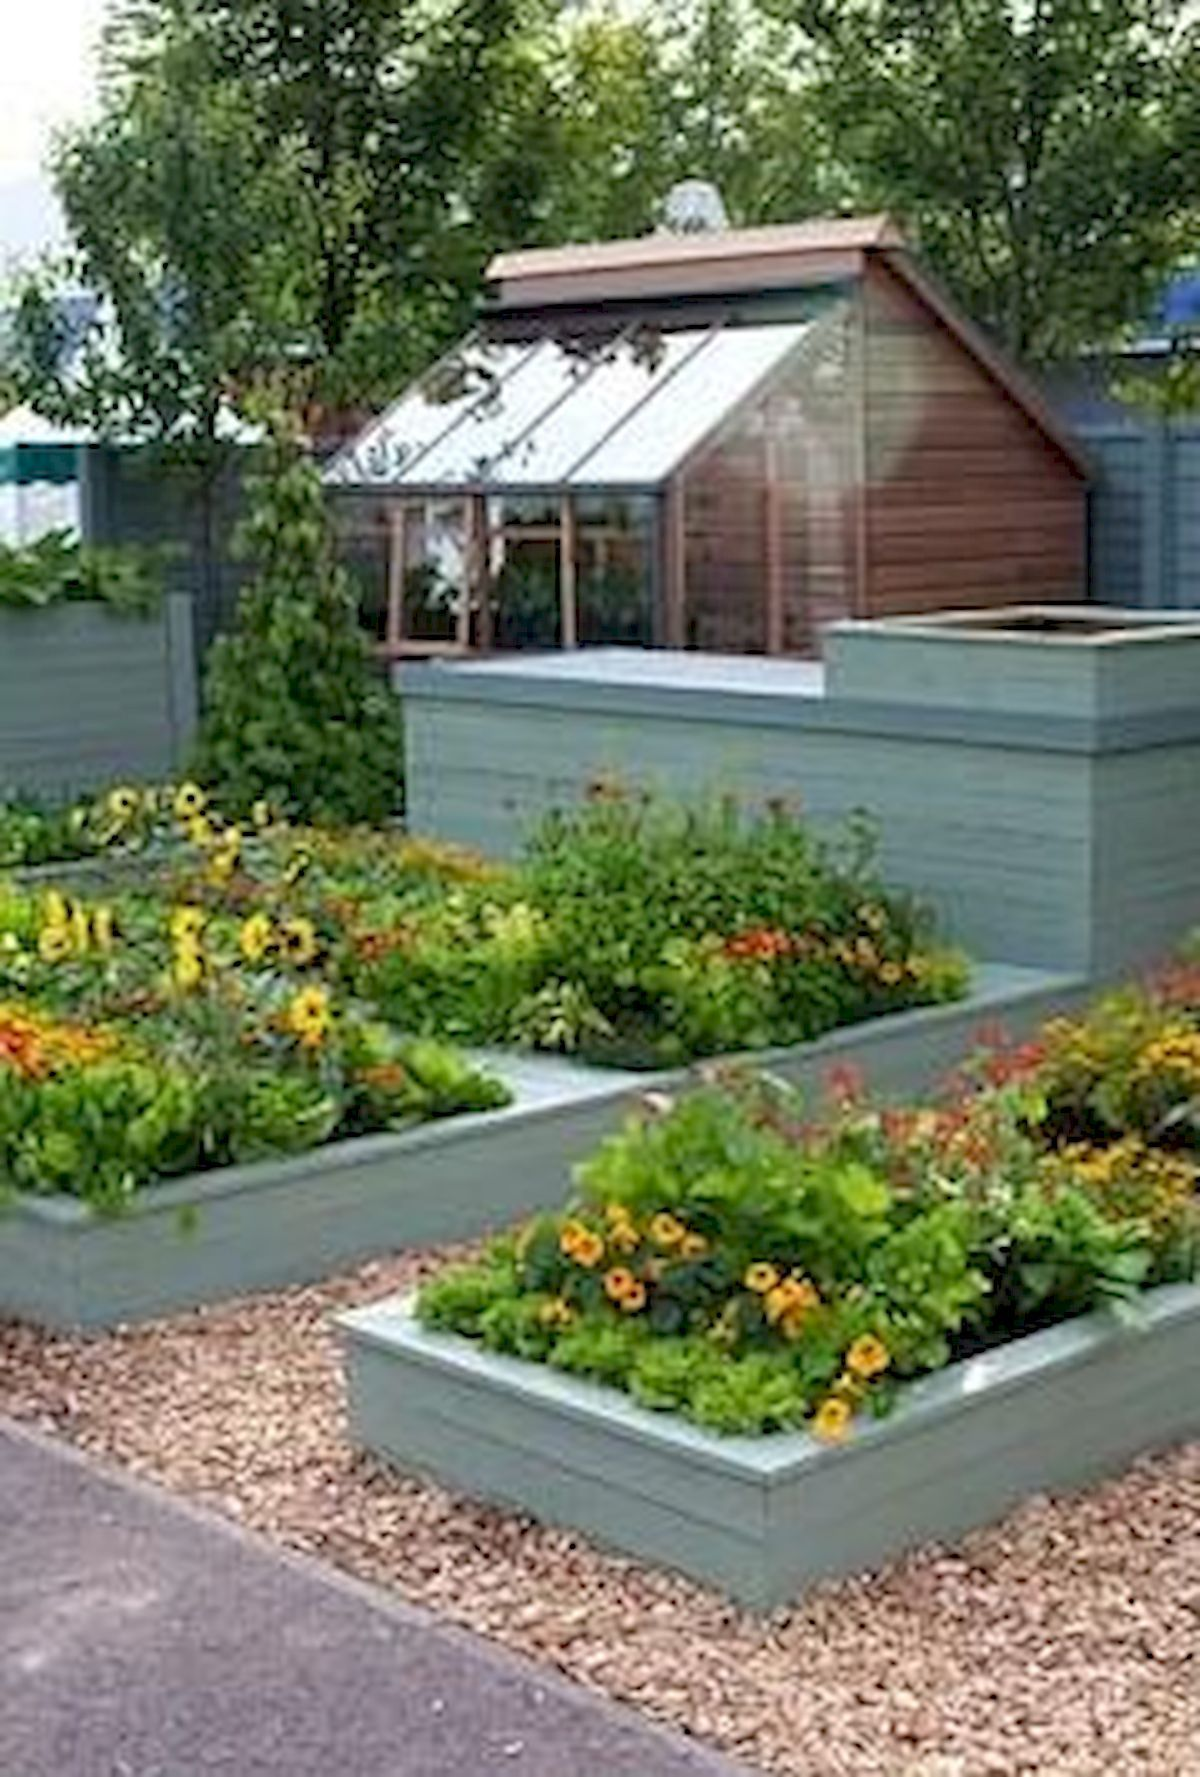 35 stunning vegetable backyard for garden ideas garden on awesome backyard garden landscaping ideas that looks amazing id=69732